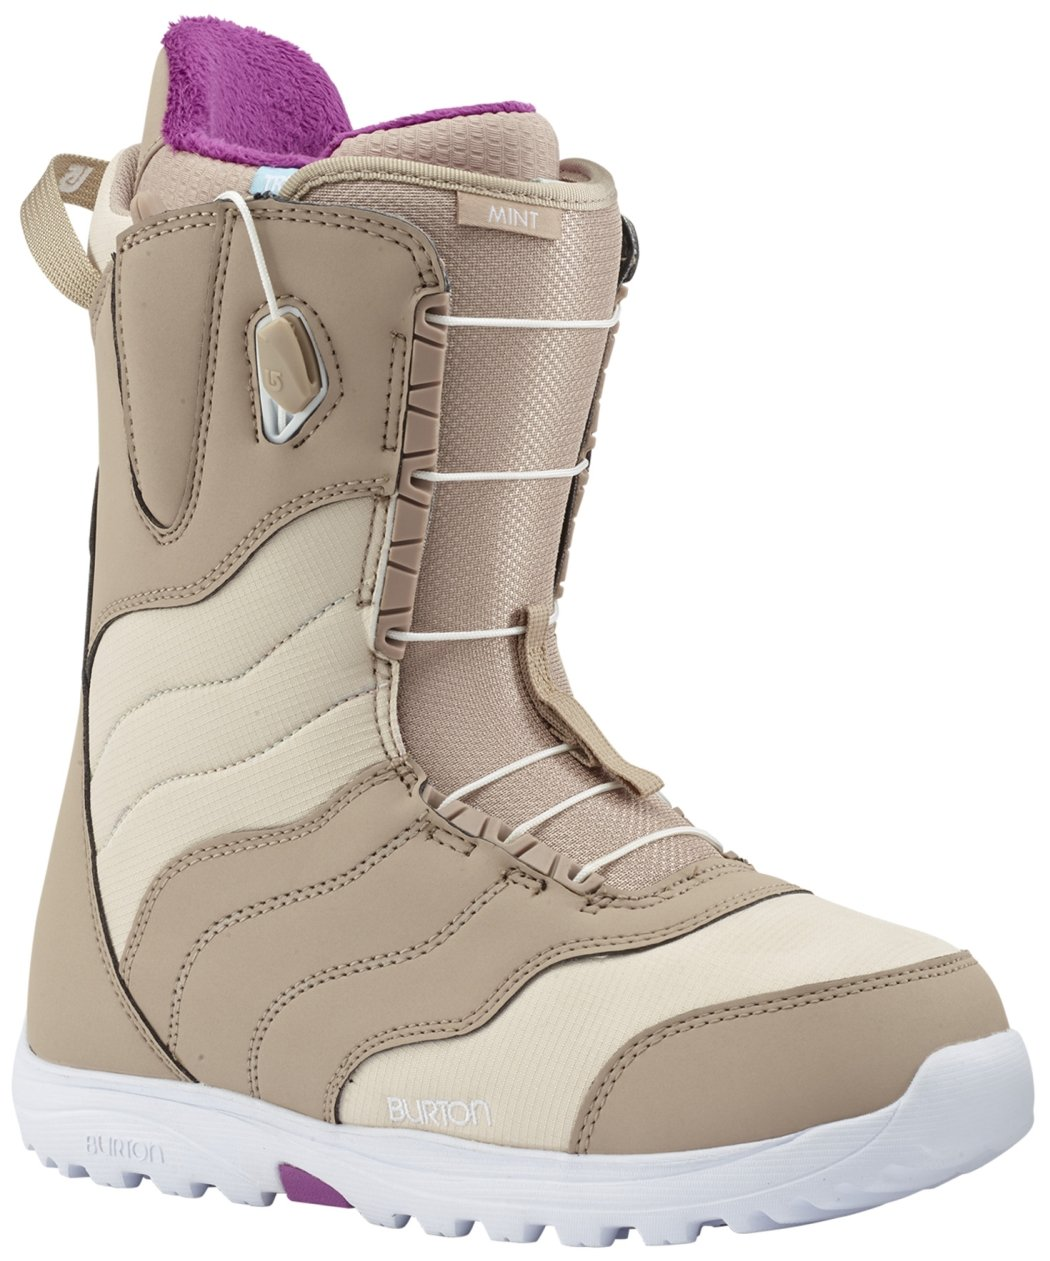 Burton Mint Snowboard Boot 2018 - Women's Tan 8 by Burton